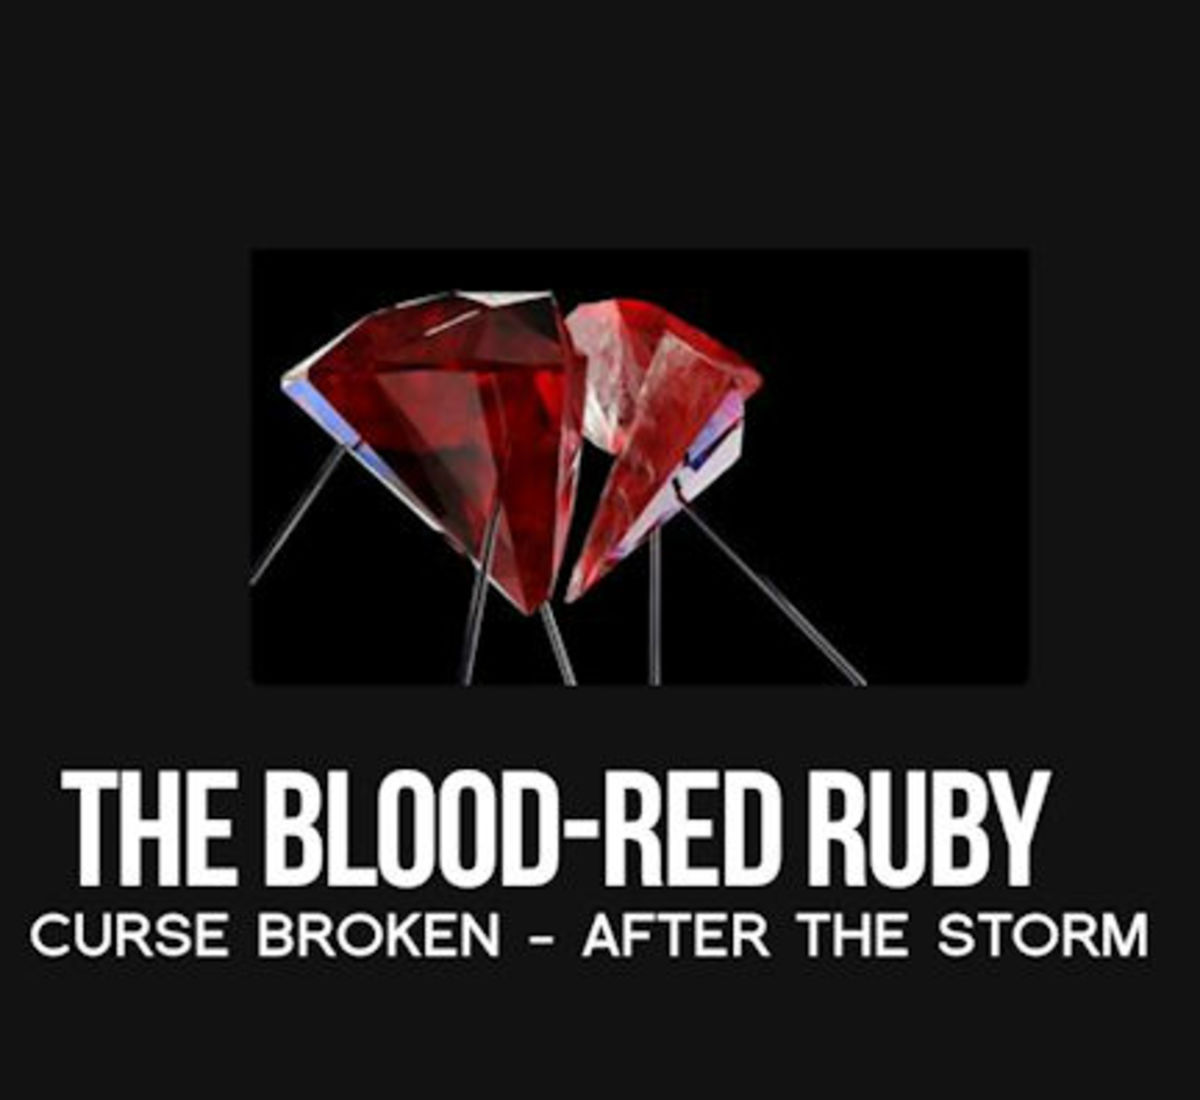 The Blood-Red Ruby: After the Storm 17